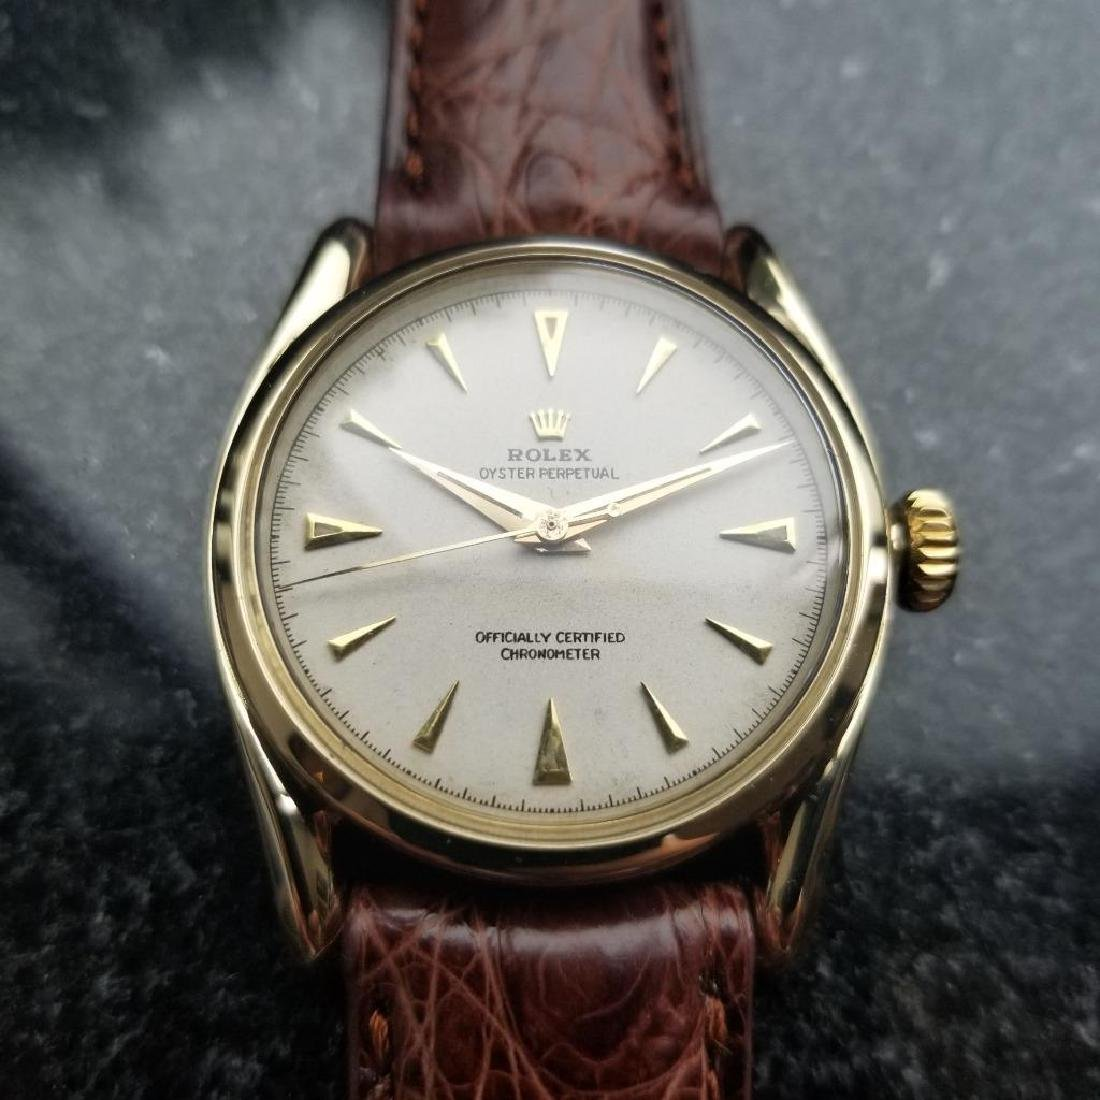 Rolex Oyster Perpetual Vintage 1951 14k Gold 6092 - 5